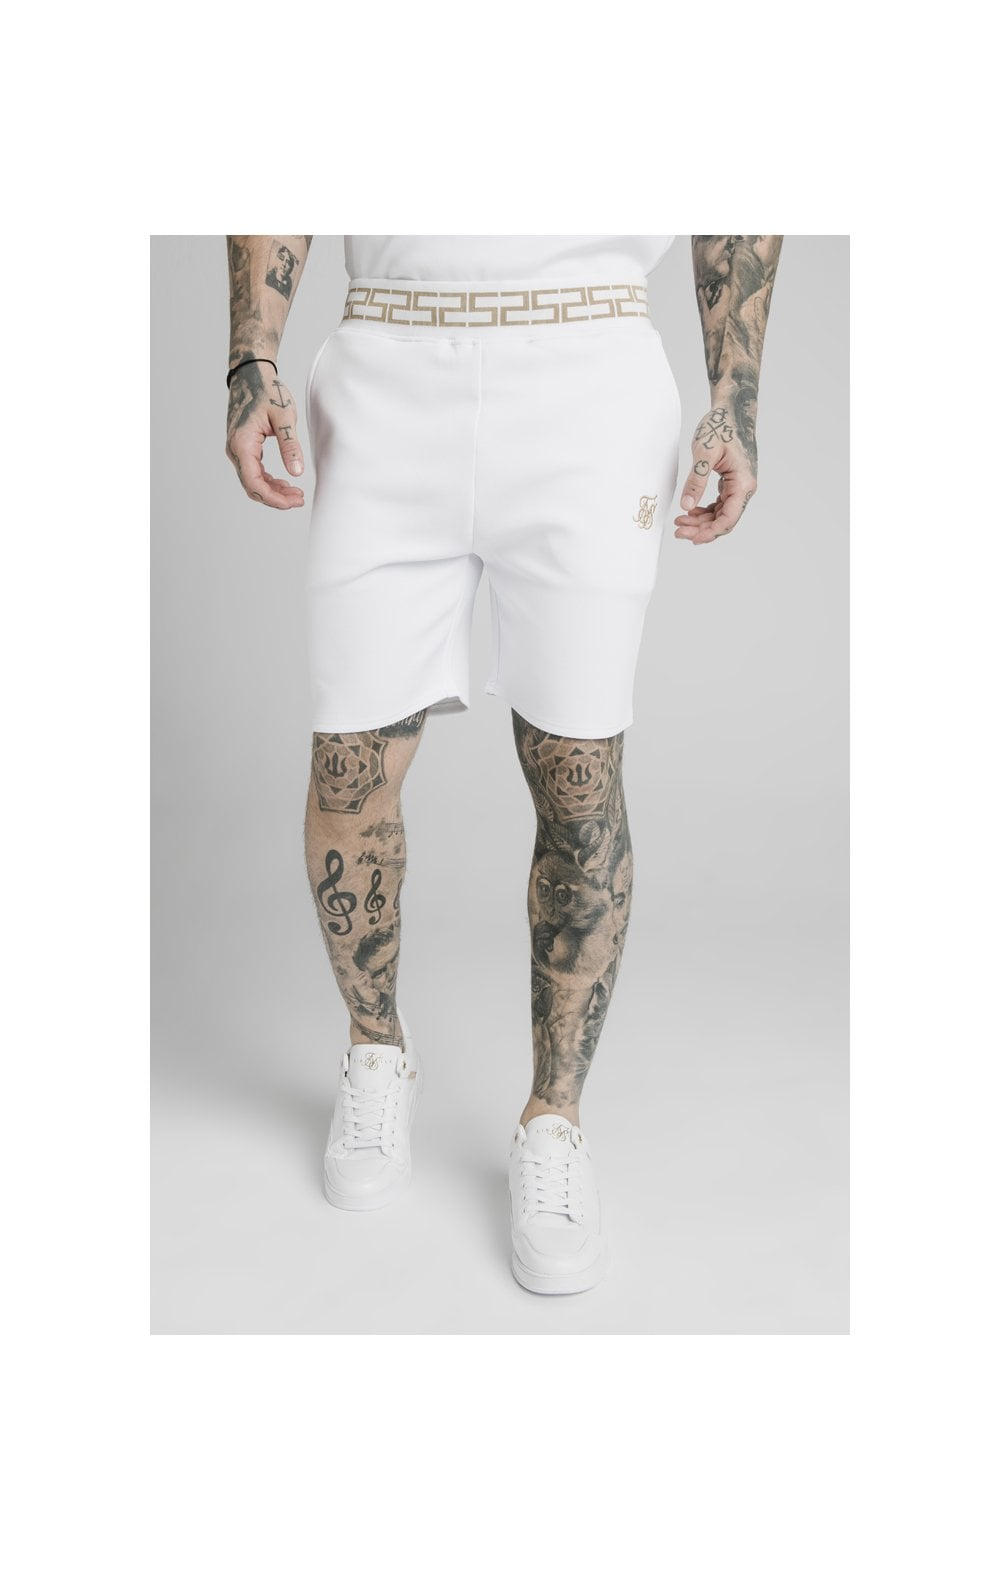 SikSilk Chain Rib Relaxed Shorts - White (1)